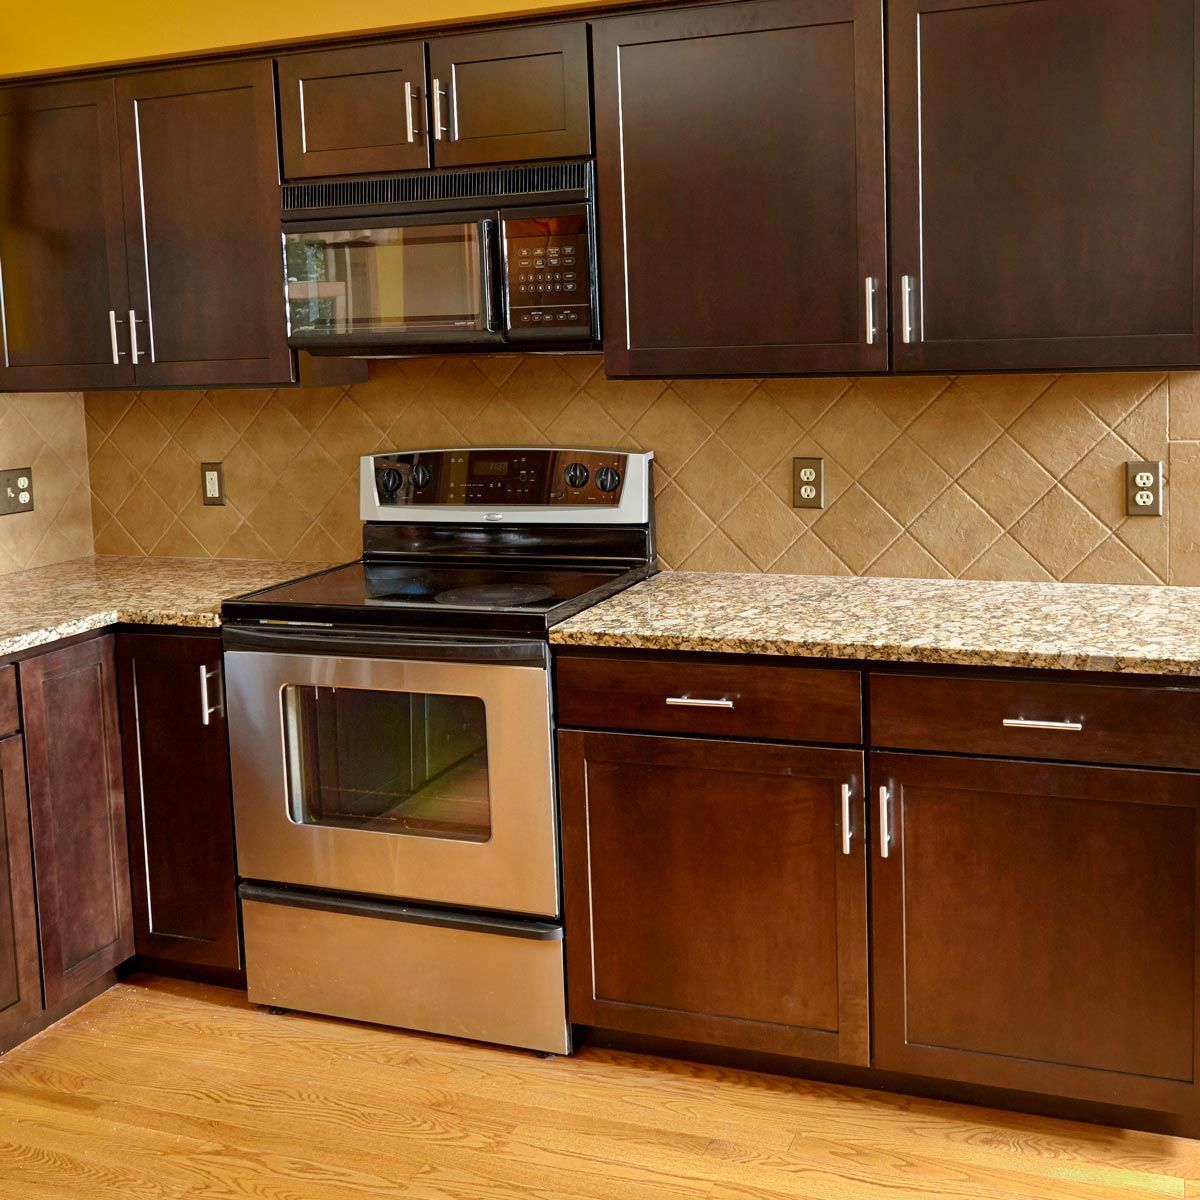 cabinet refacing how to reface kitchen cabinets refacing kitchen cabinets kitchen cabinet on kitchen cabinets refacing id=55102